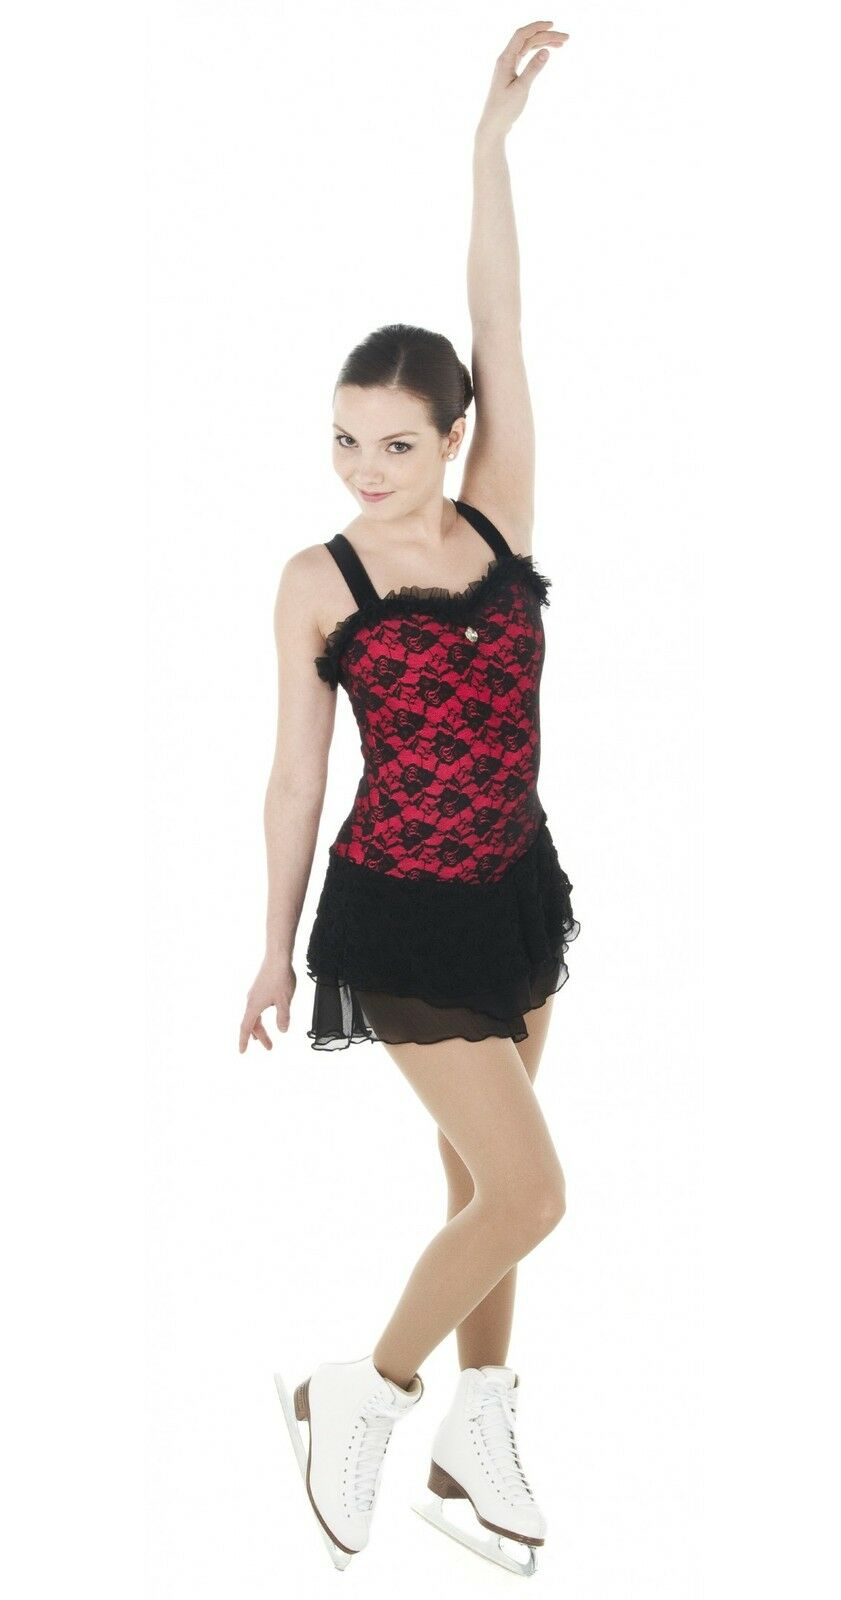 New Competition Skating Dress Xpression Tango Burlesque 1420 Youth 12-14